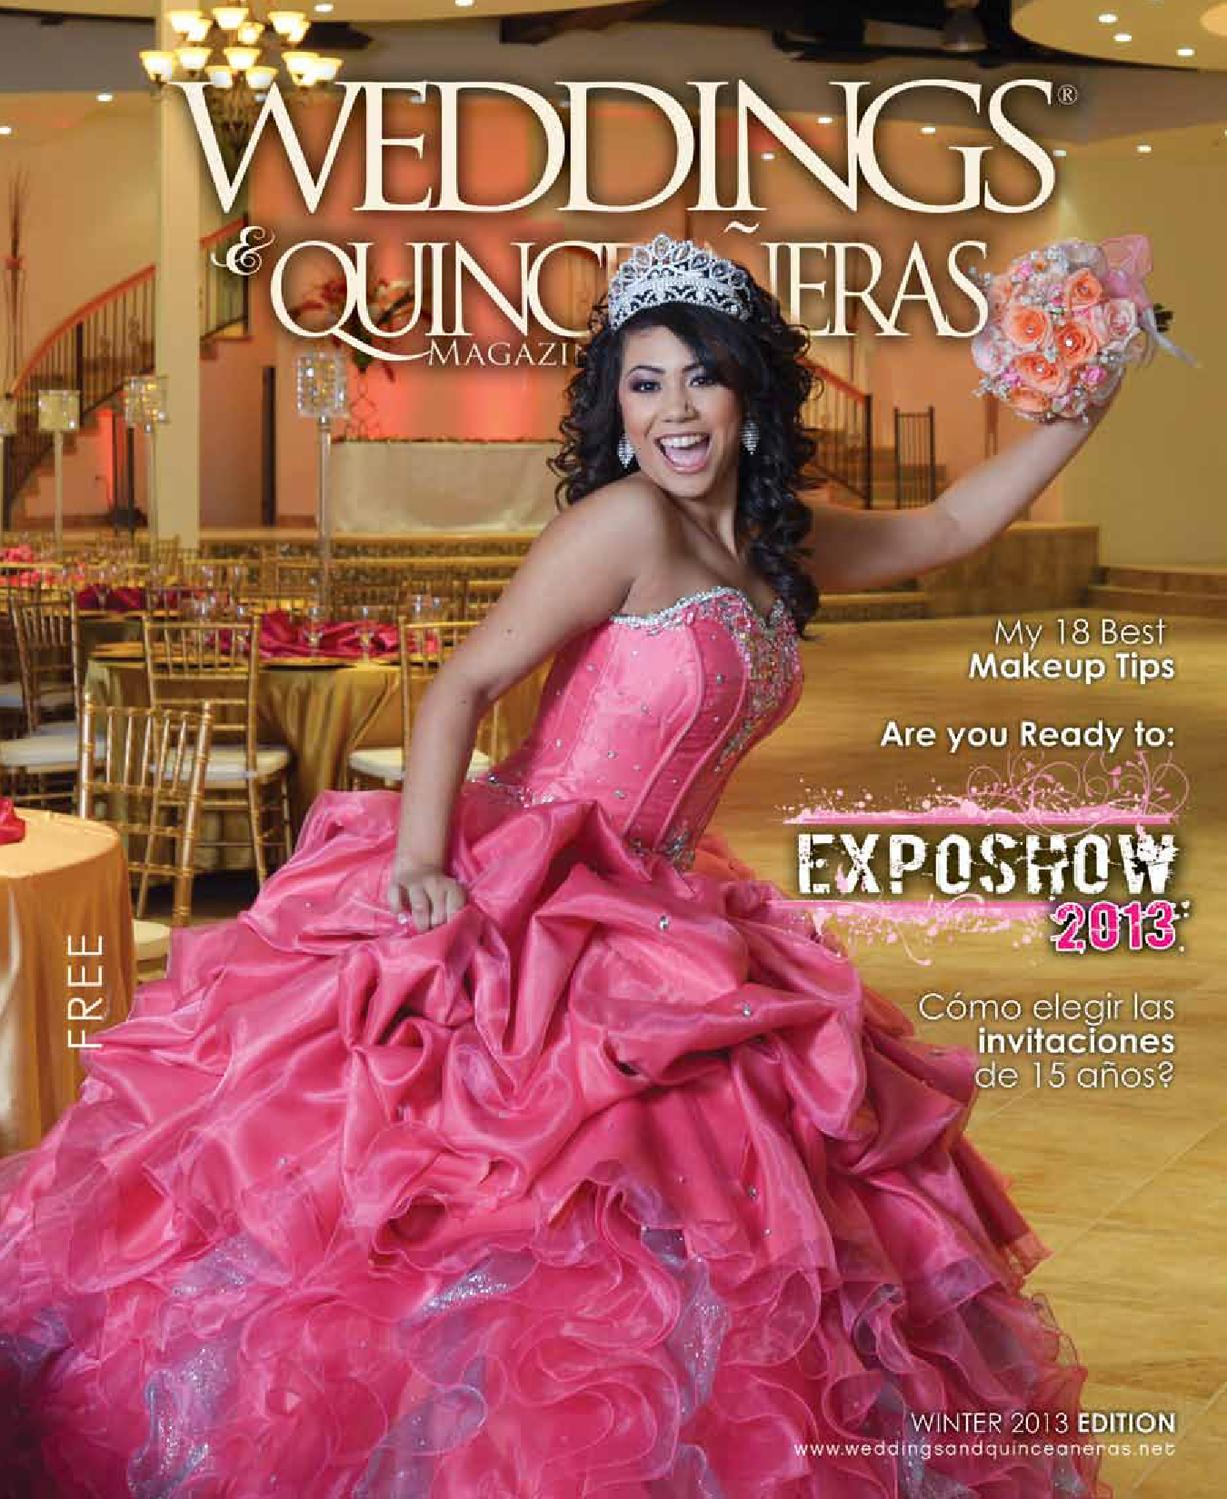 Weddings & Quinceaneras Winter 2013 by Diana Correa - issuu